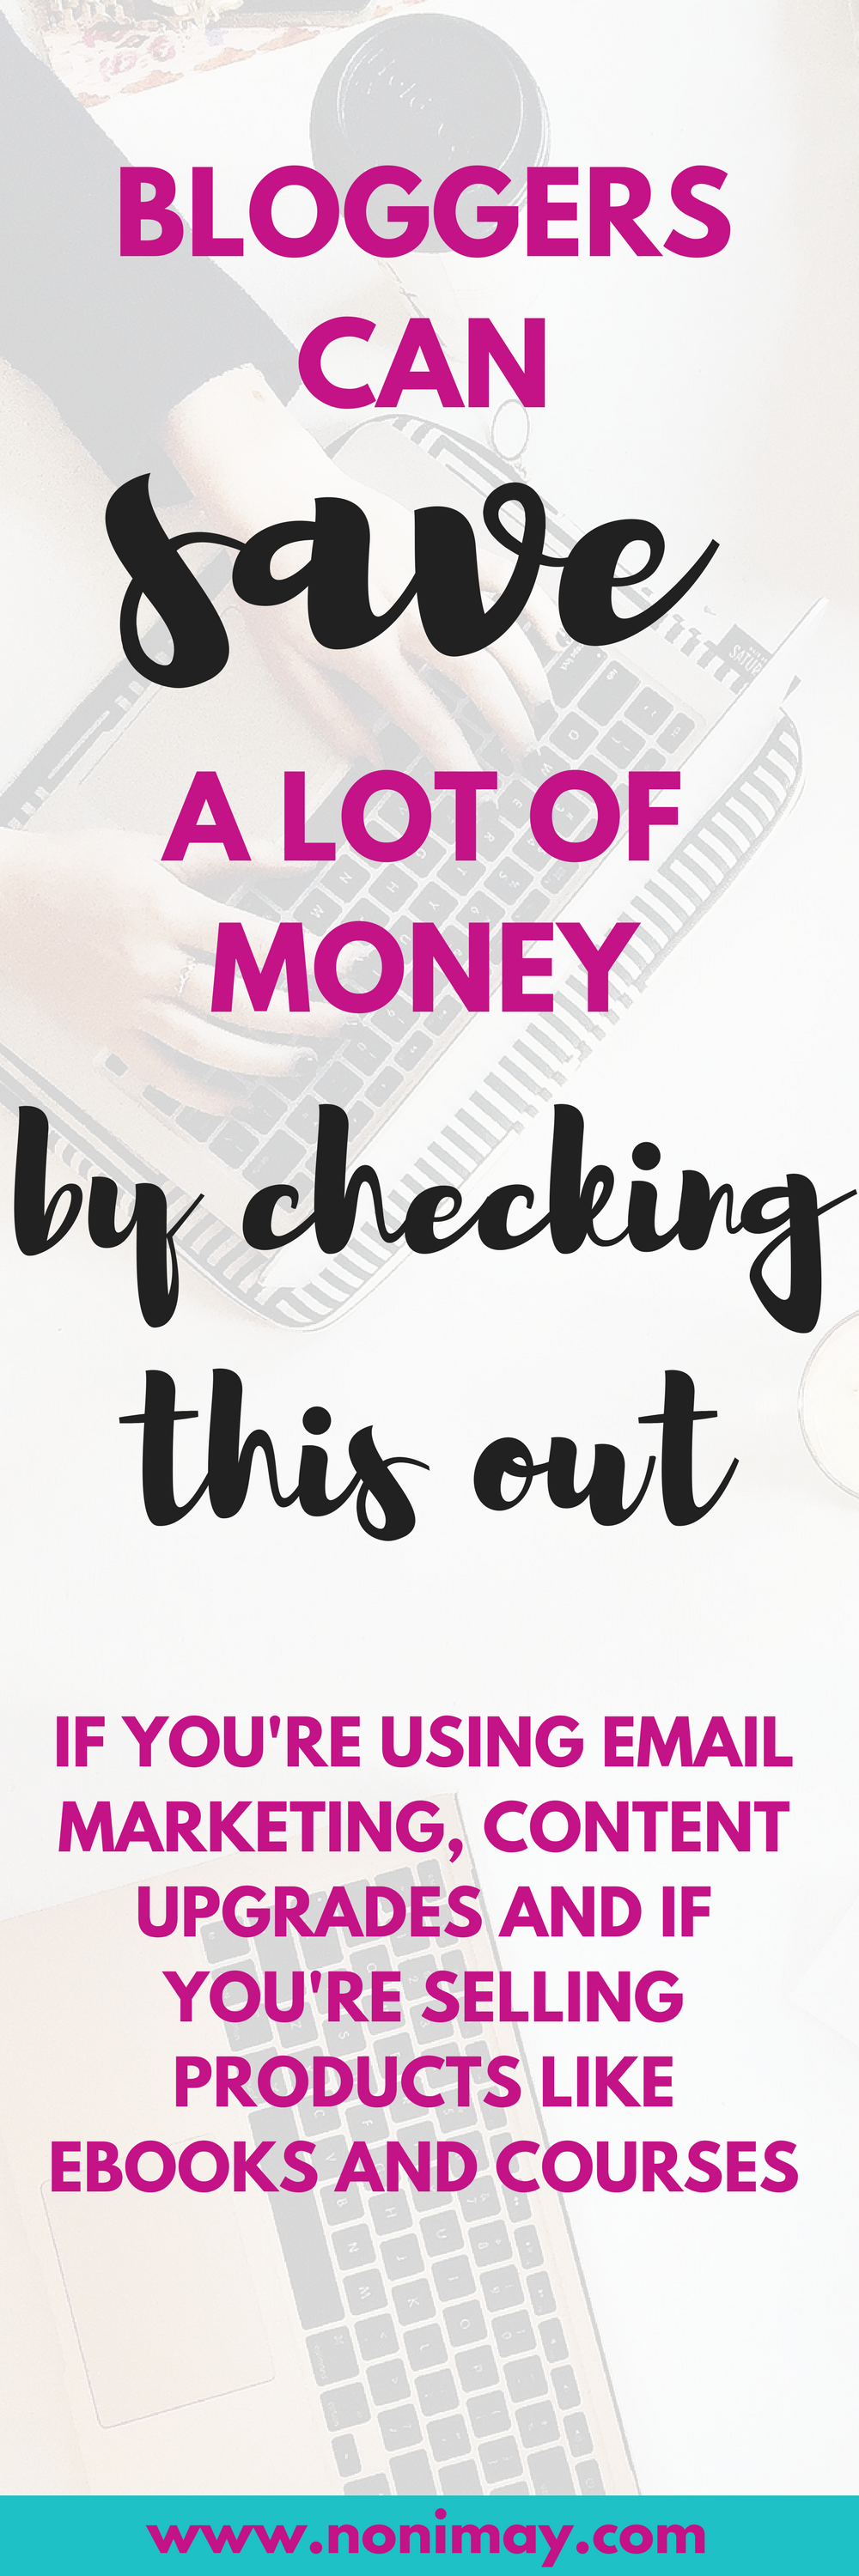 Bloggers can save a lot of money by checking this out. email marketing, online courses, automatic sequences and more